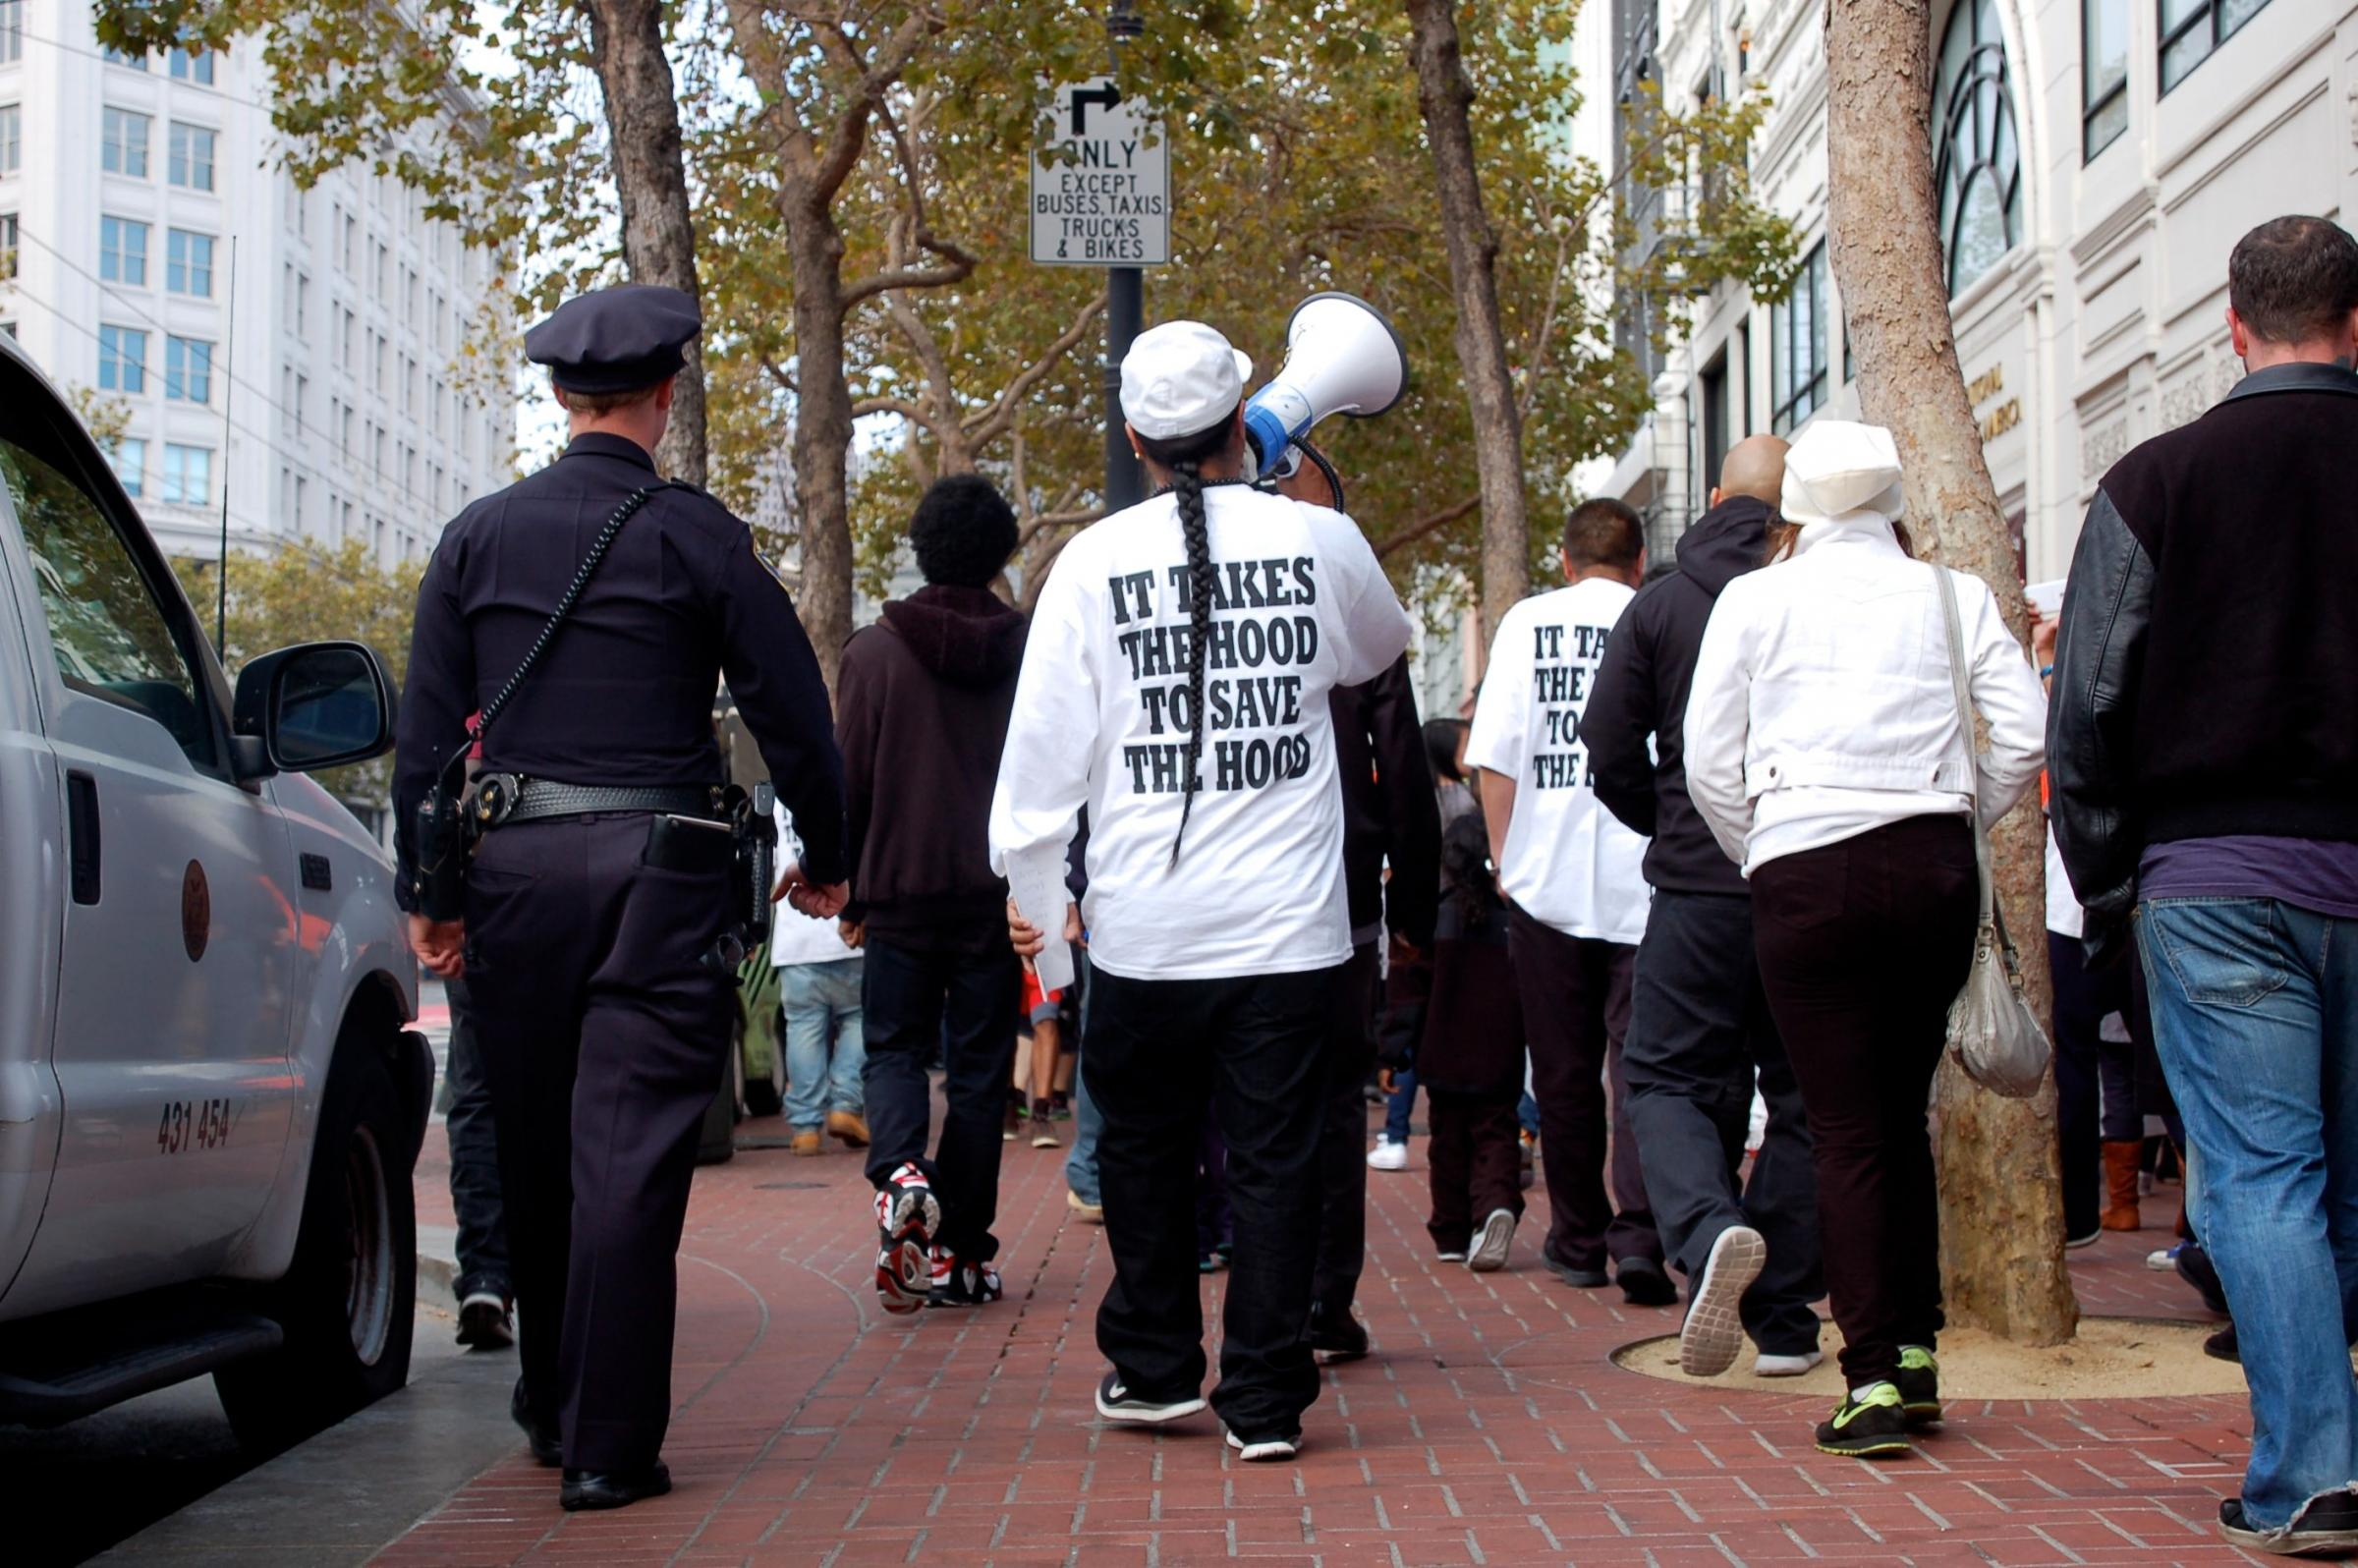 Caption: Rudy Corpuz, Jr. (center) leads a Silence to Violence march down Market Street on September 4, 2014., Credit: Anna Kolhede